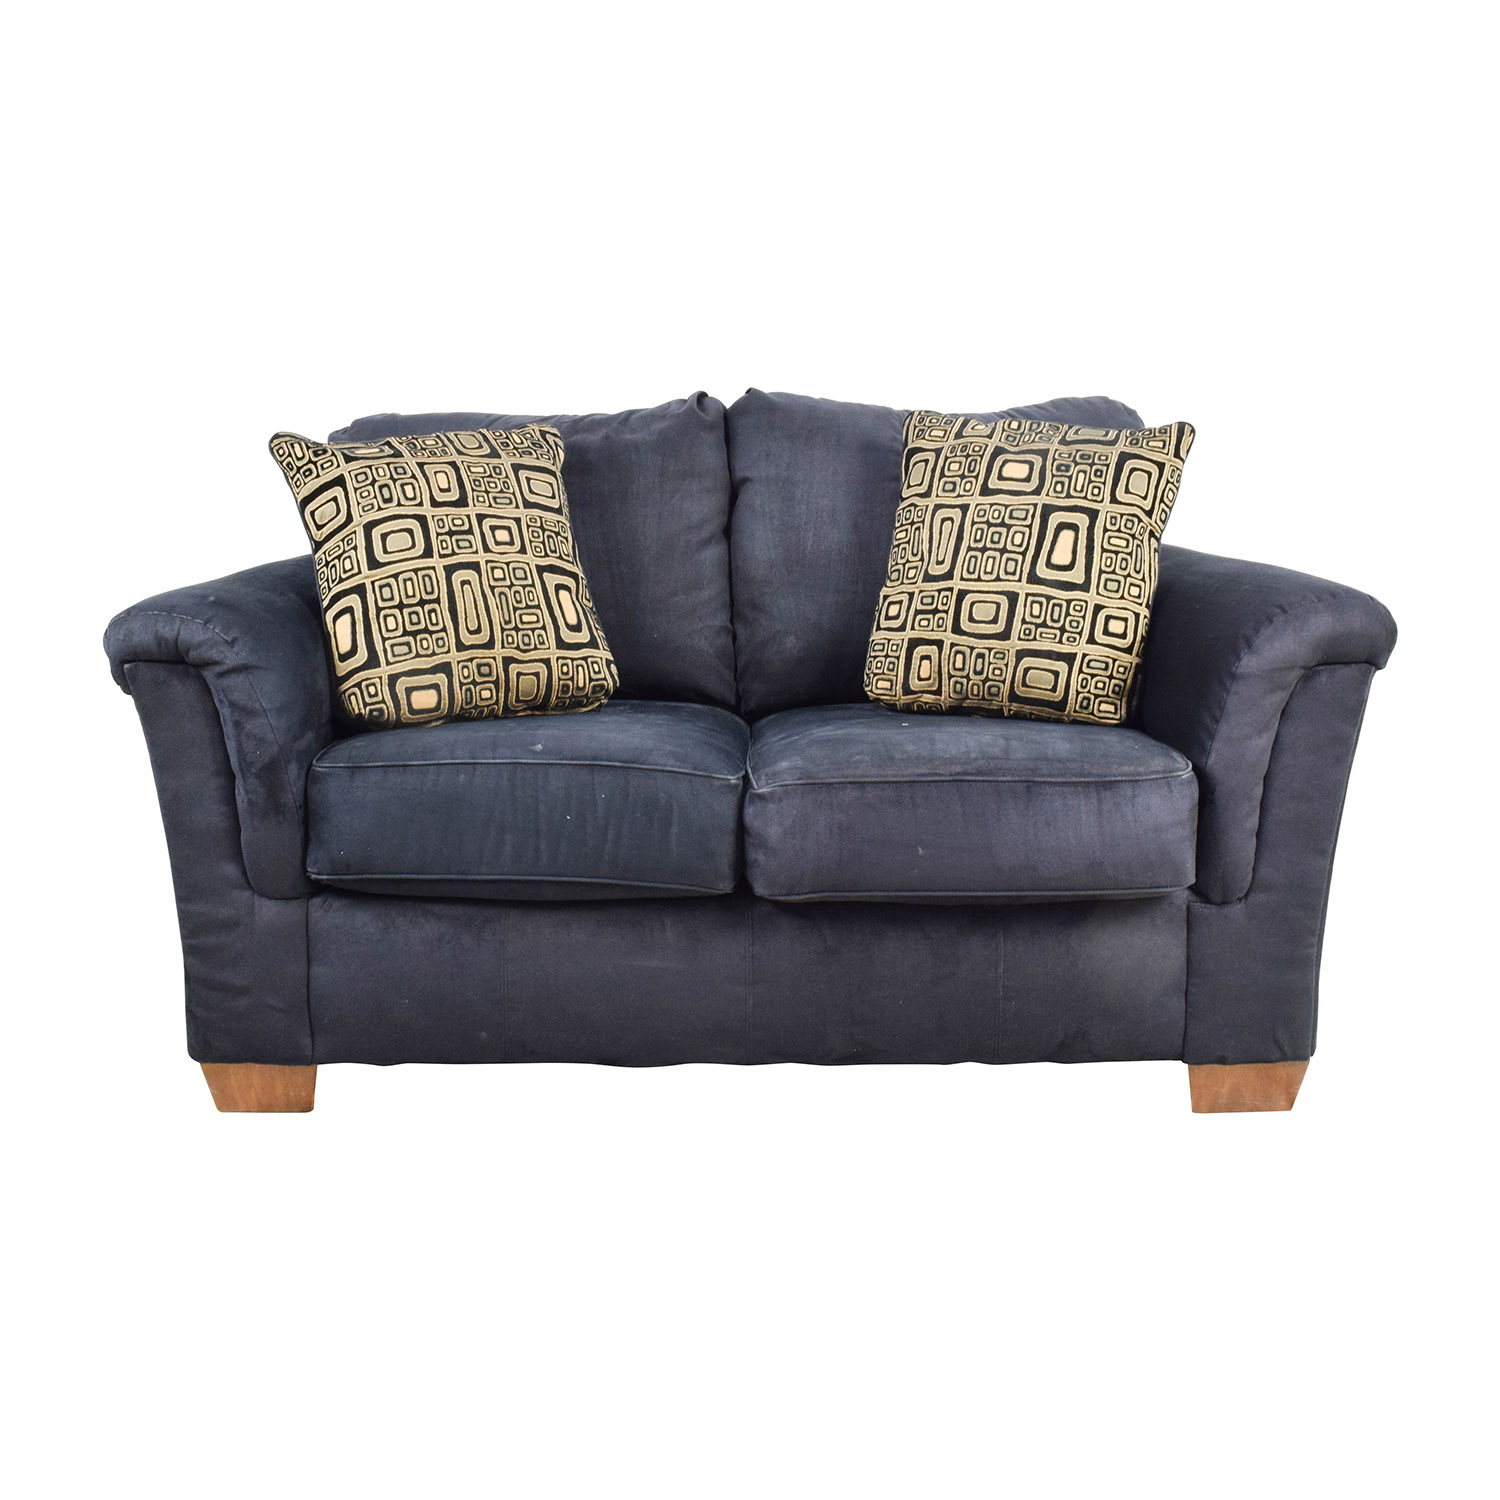 Merveilleux Ashley Furniture Janley Loveseat Sale ...